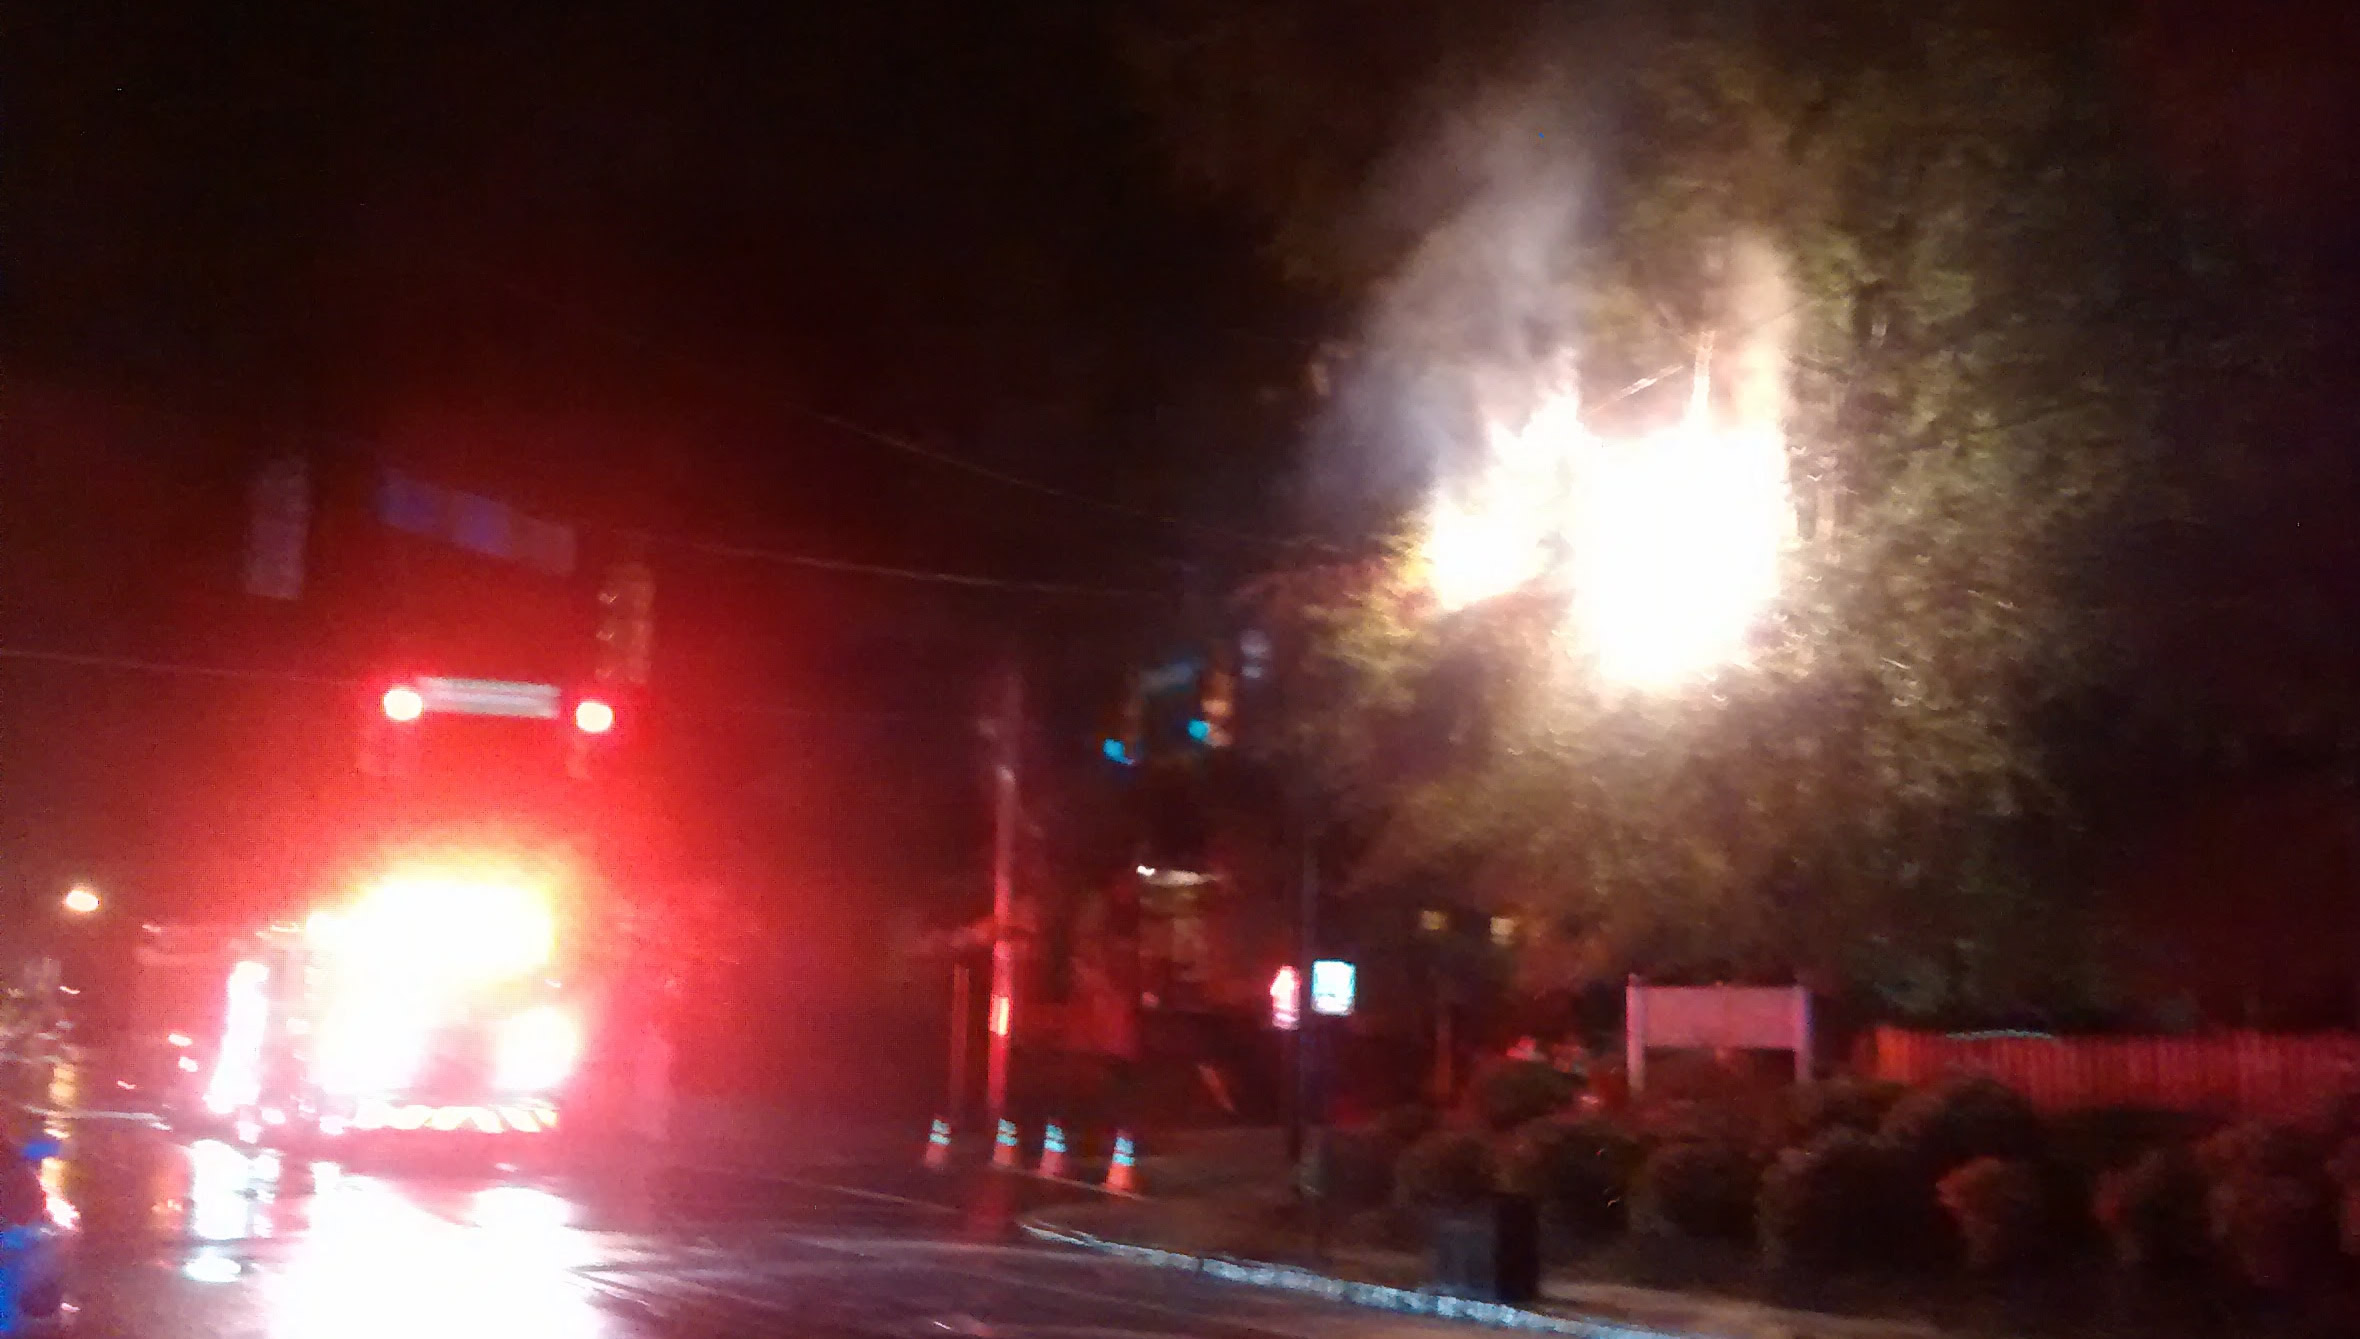 A blown transformer, a burning tree and a fire truck light up the rainy evening on Spring Garden Street.